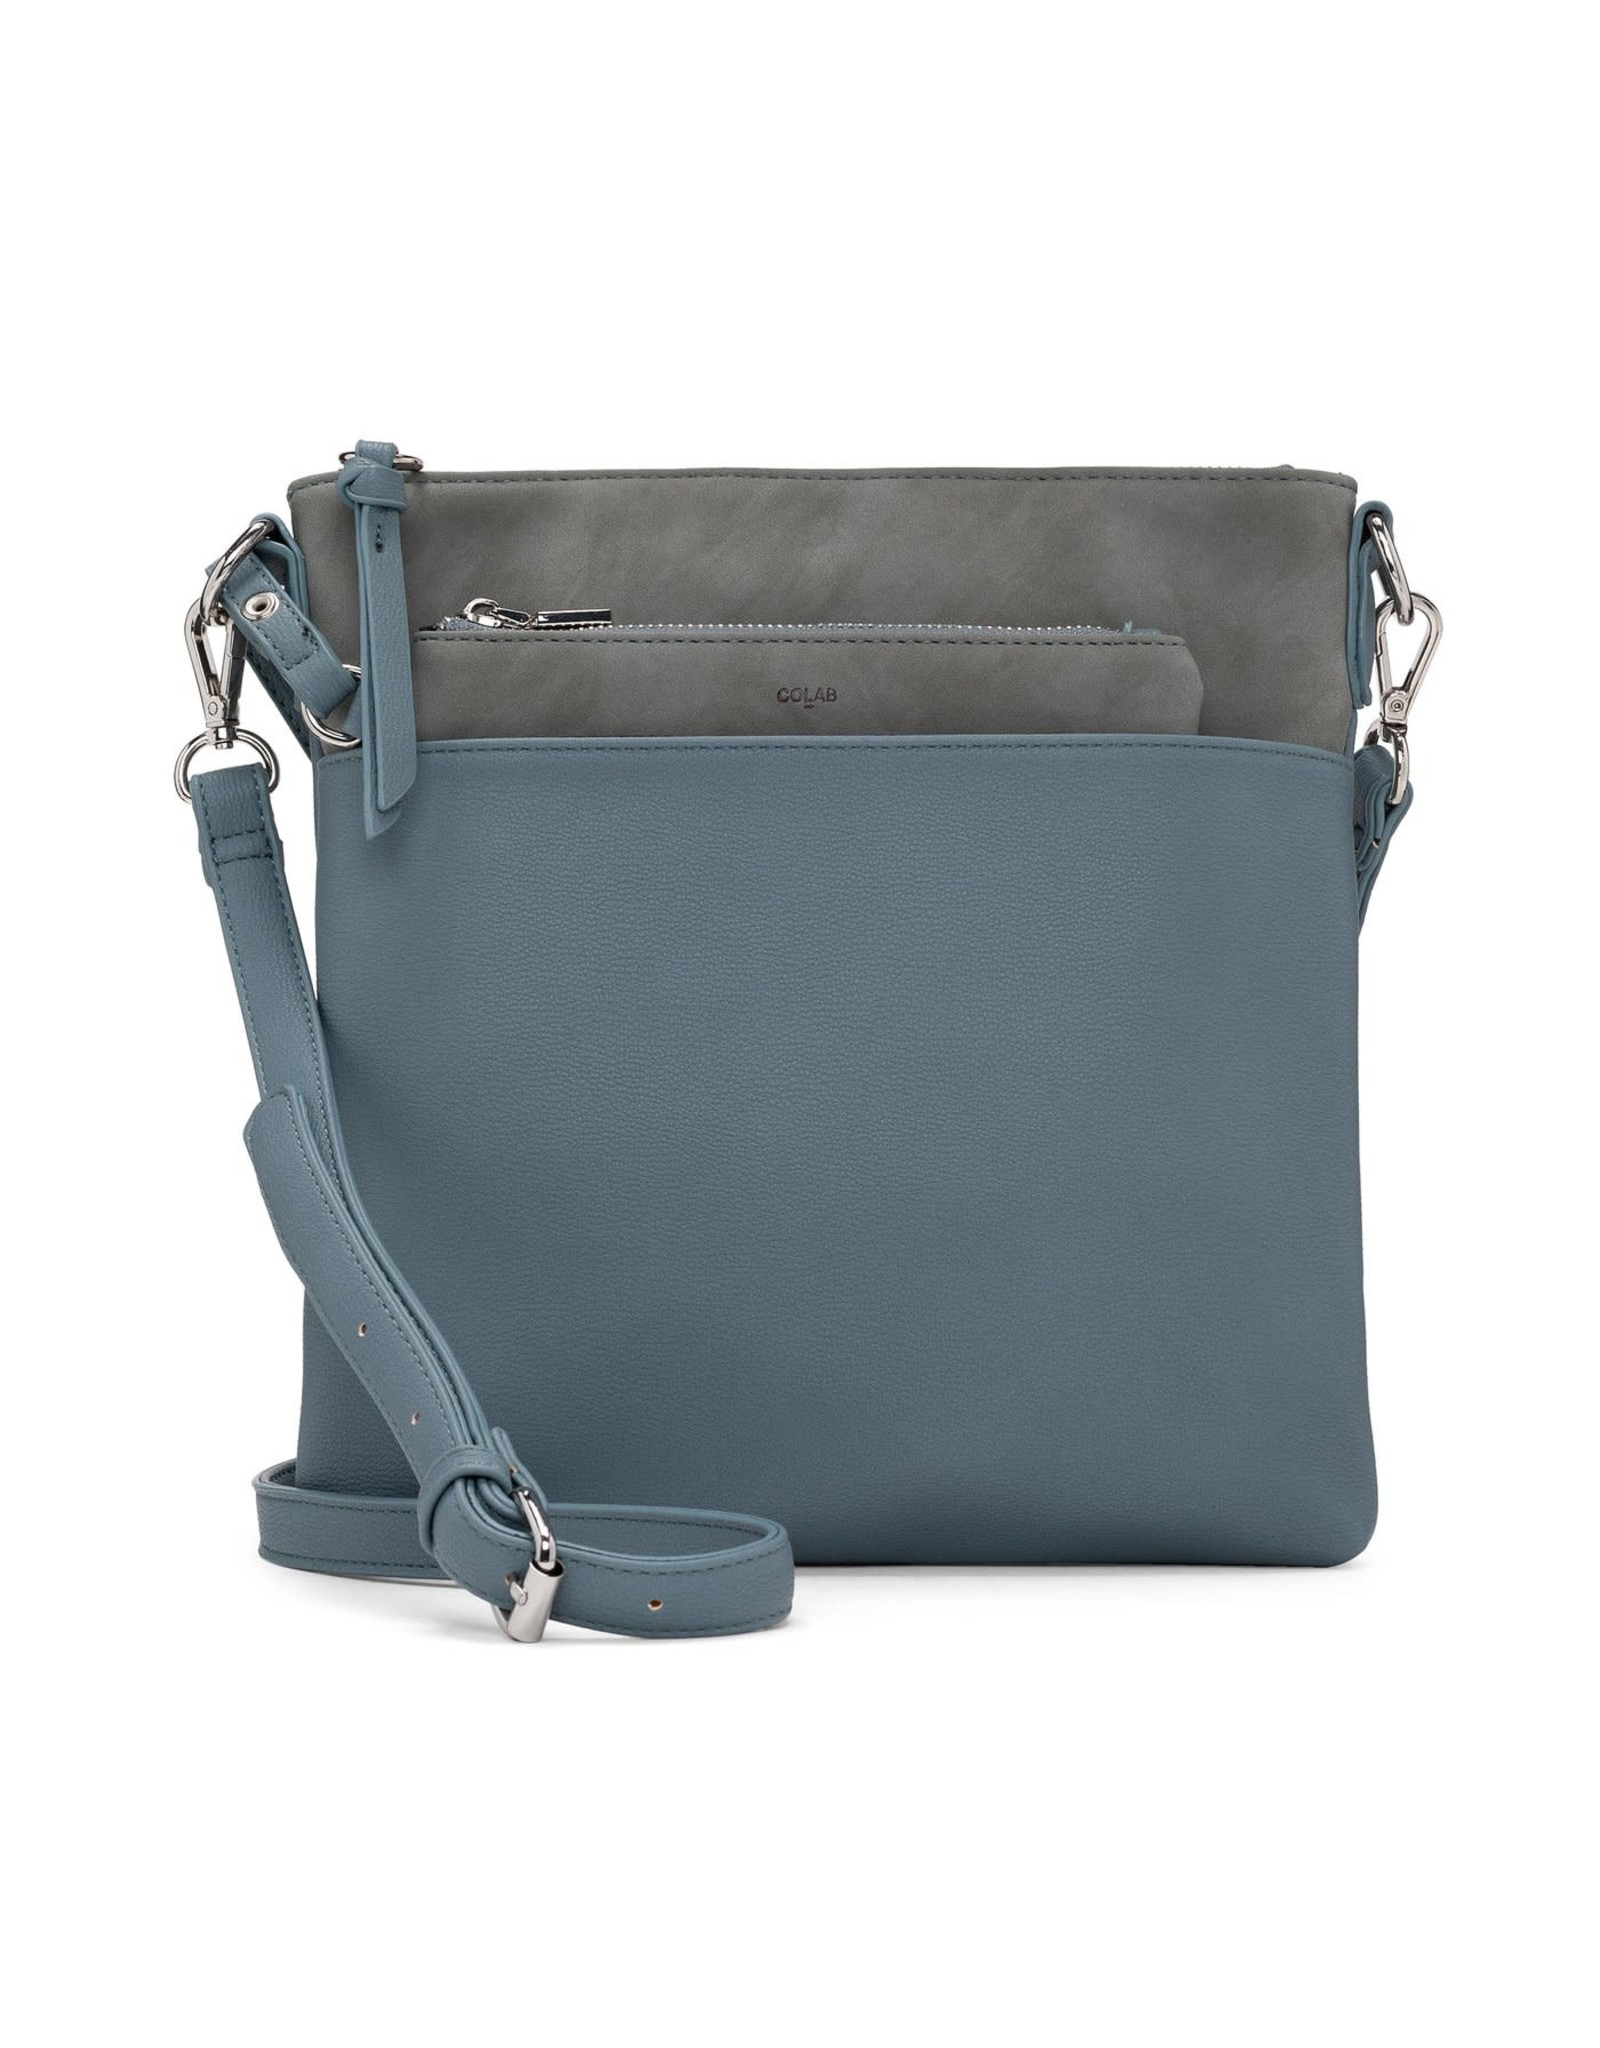 co-lab co-lab Suede Flat Crossbody with Pouch